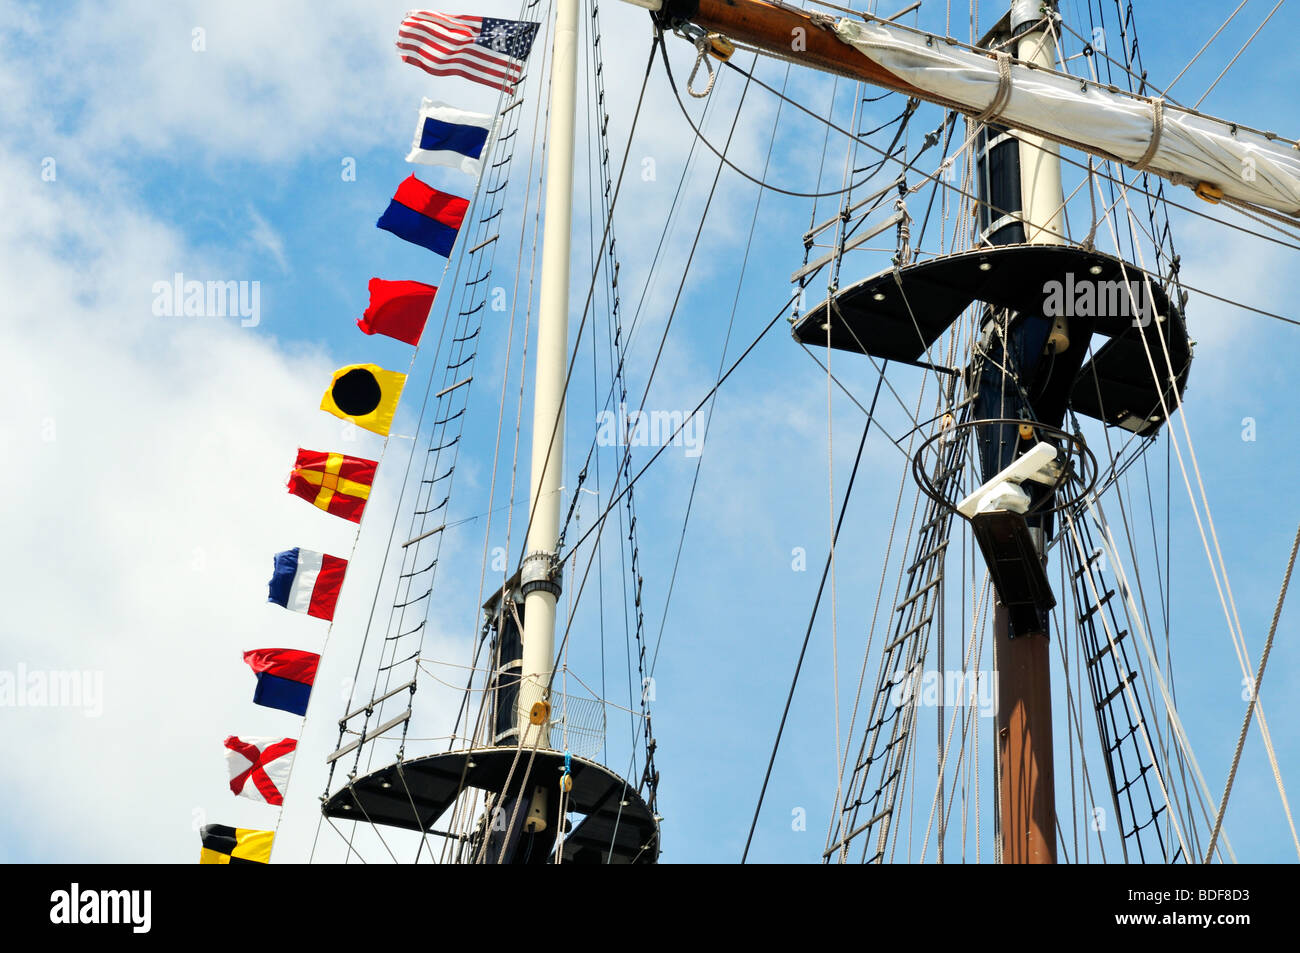 Tallship upper mast with flags - Stock Image